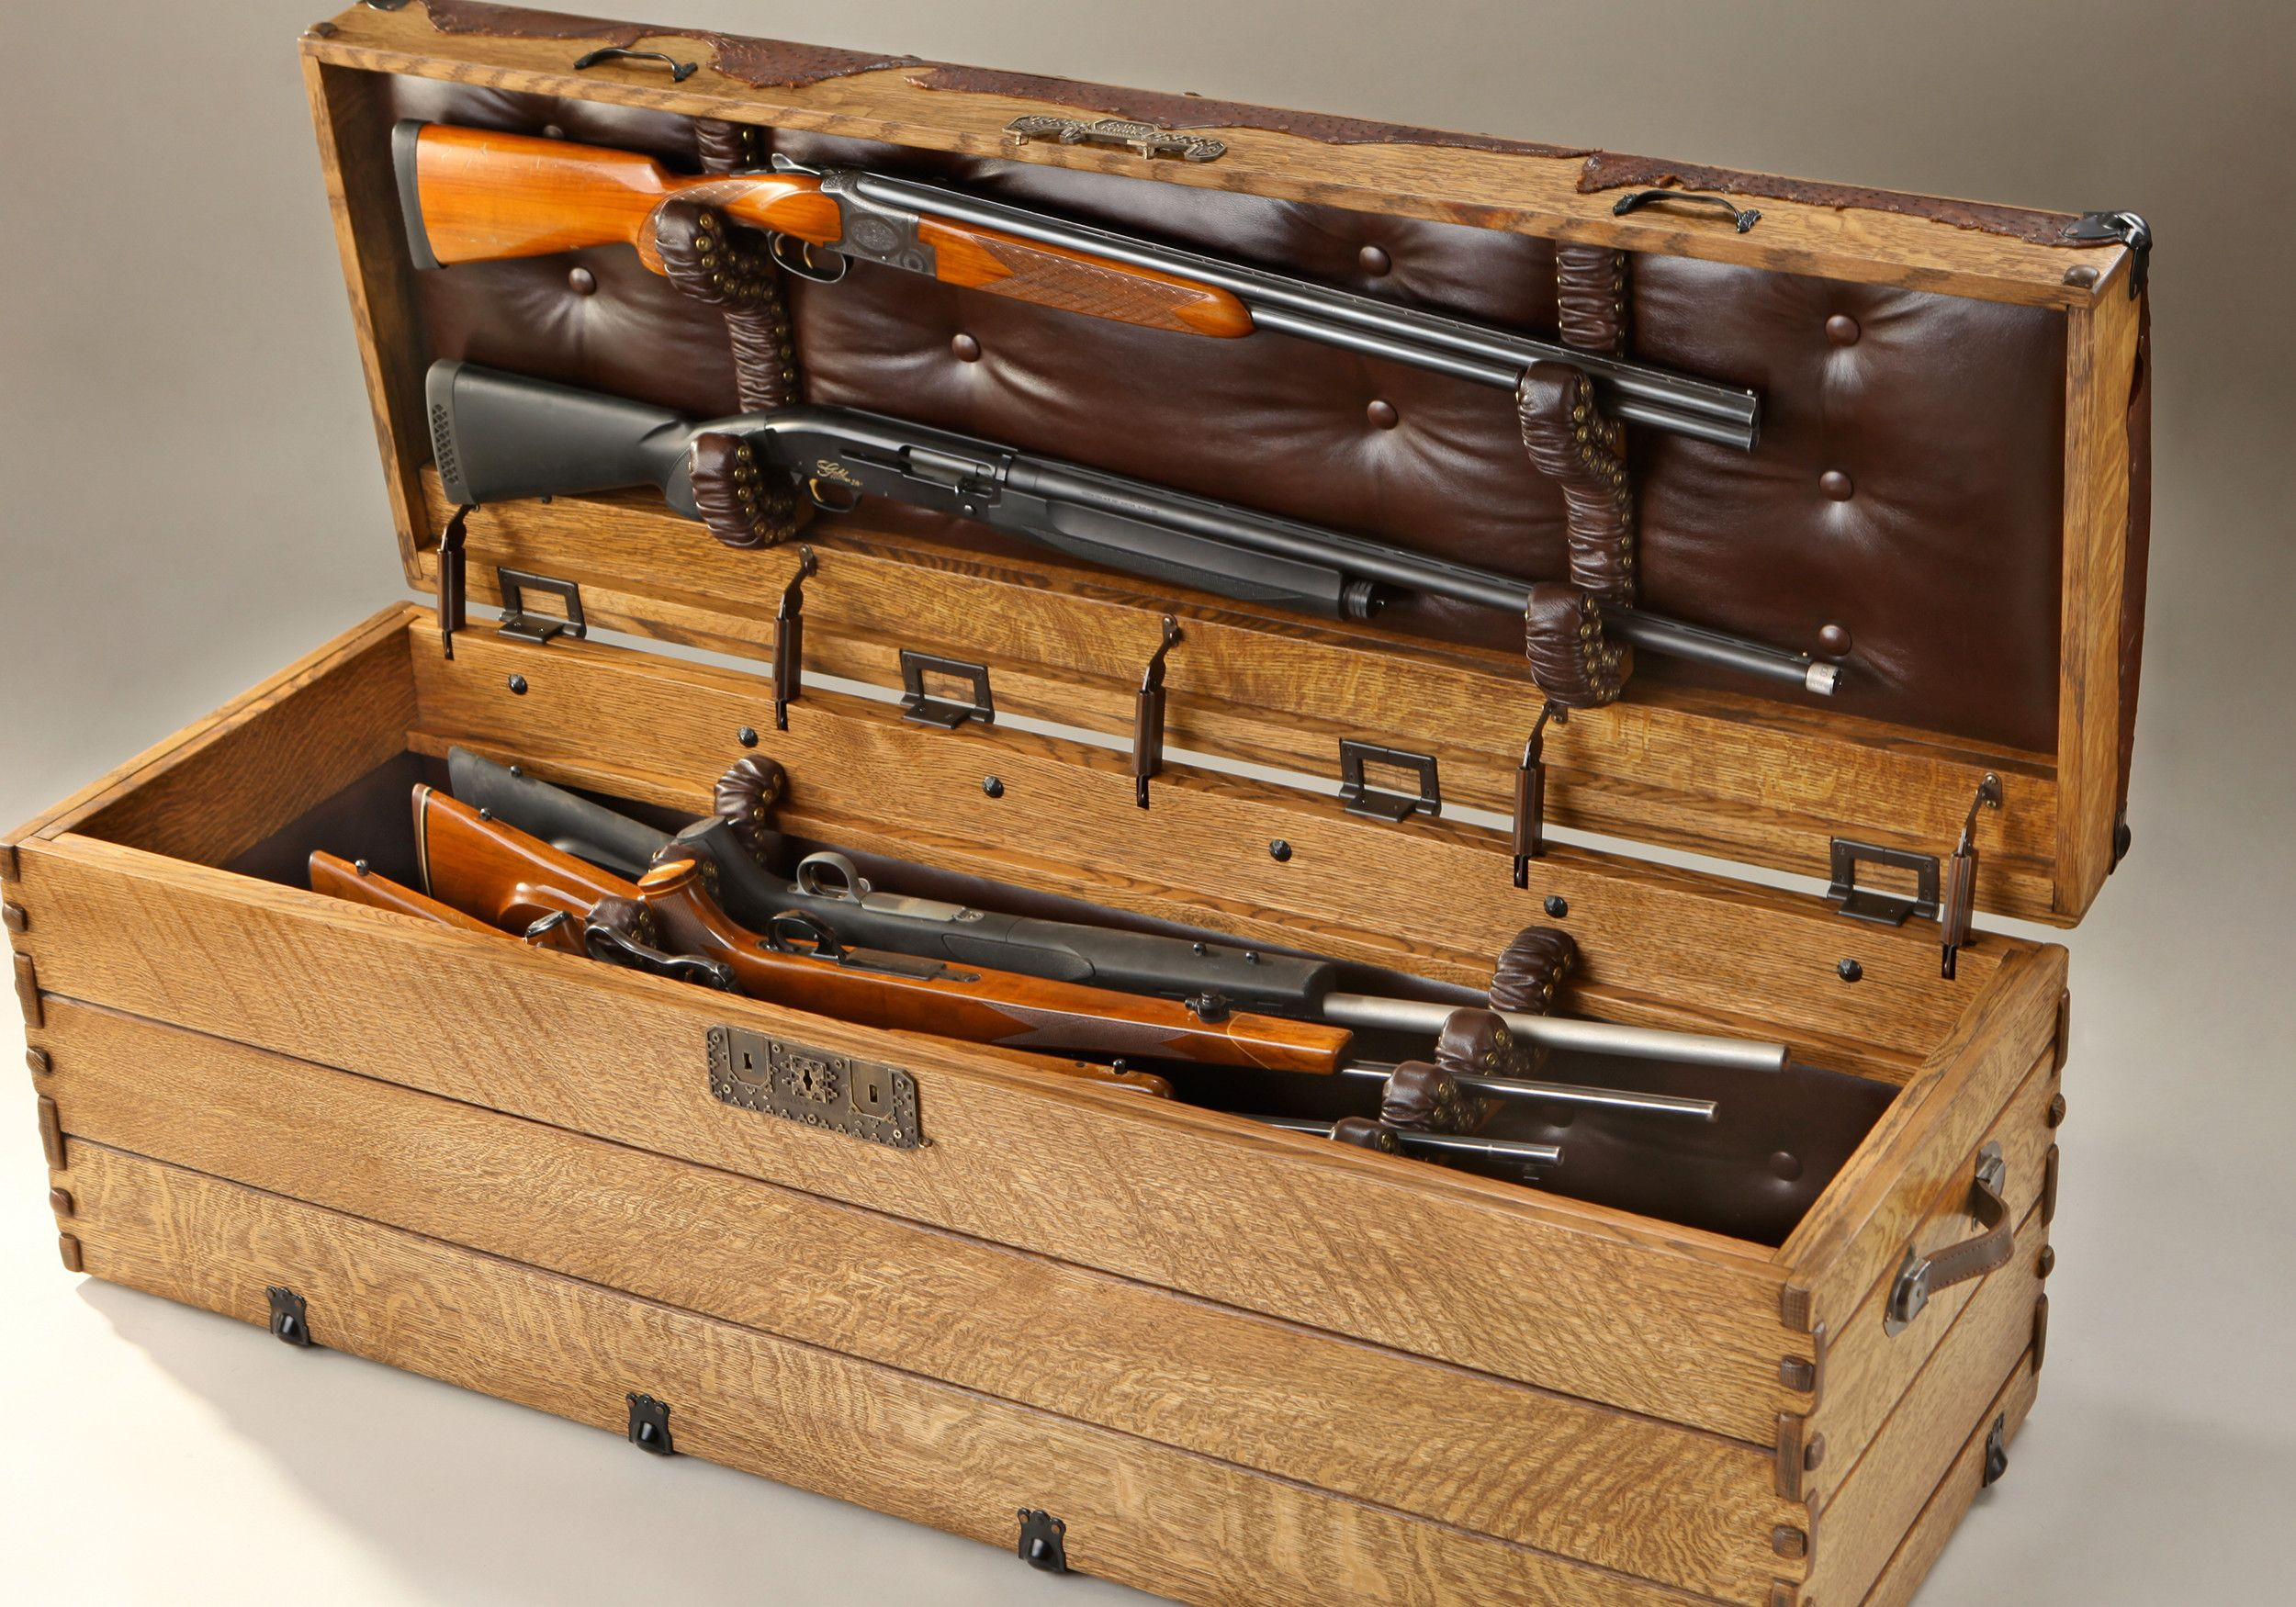 Pin By Aaron Newman On Wood Projects Guns Firearms